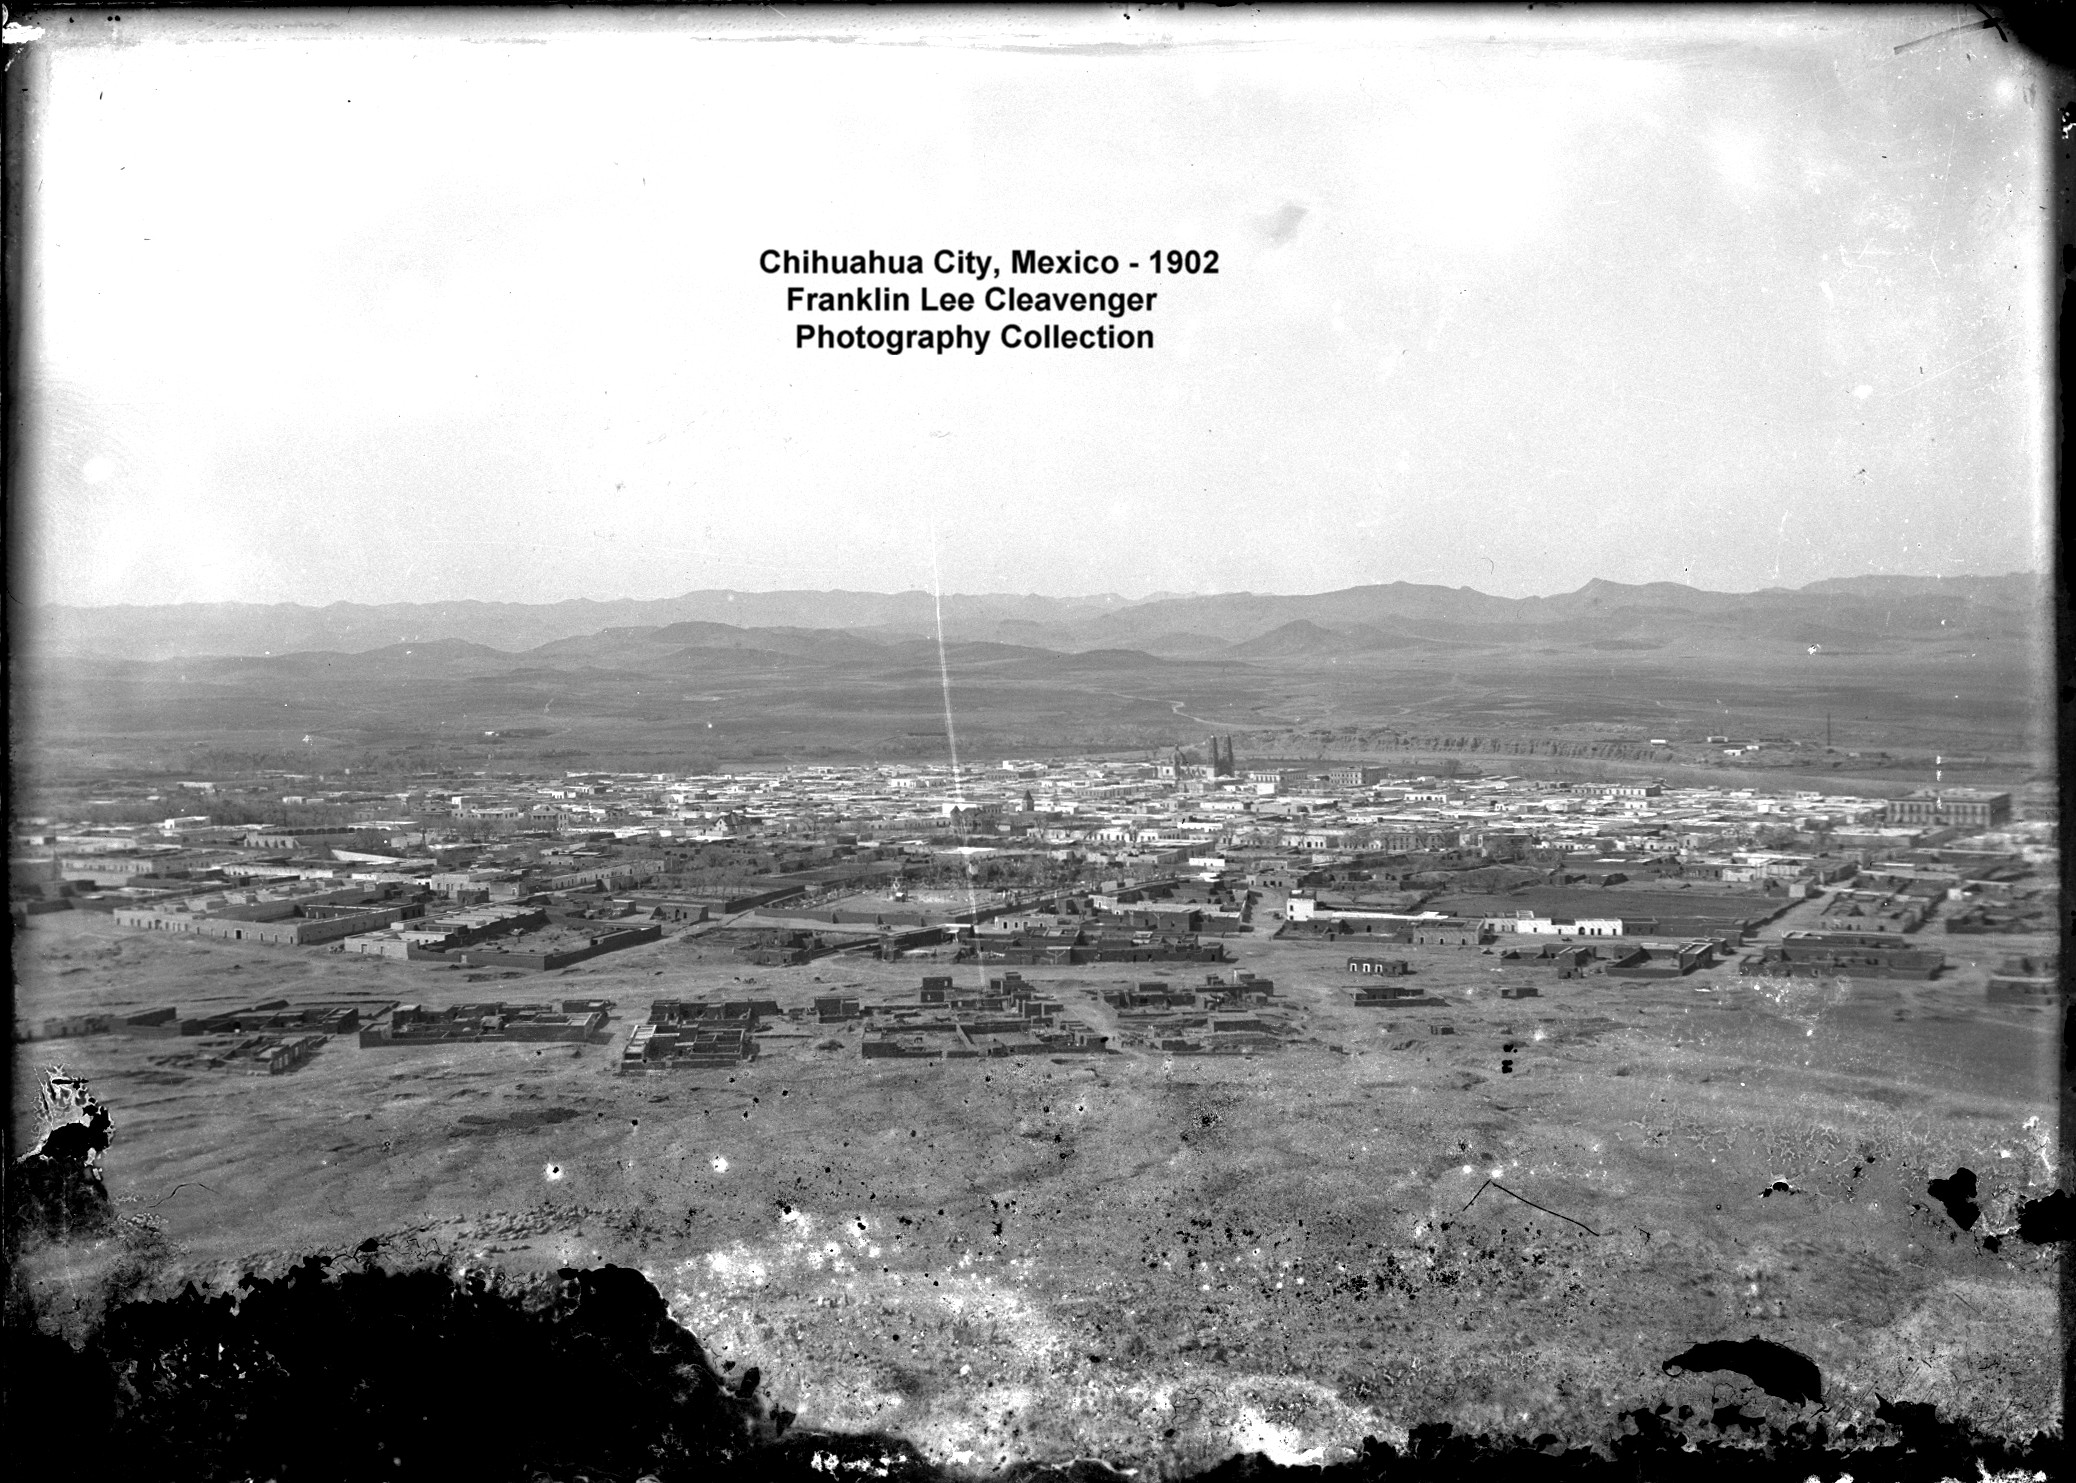 Chihuahua City, Mexico - 1902. Franklin Lee Cleavenger Photography Collection